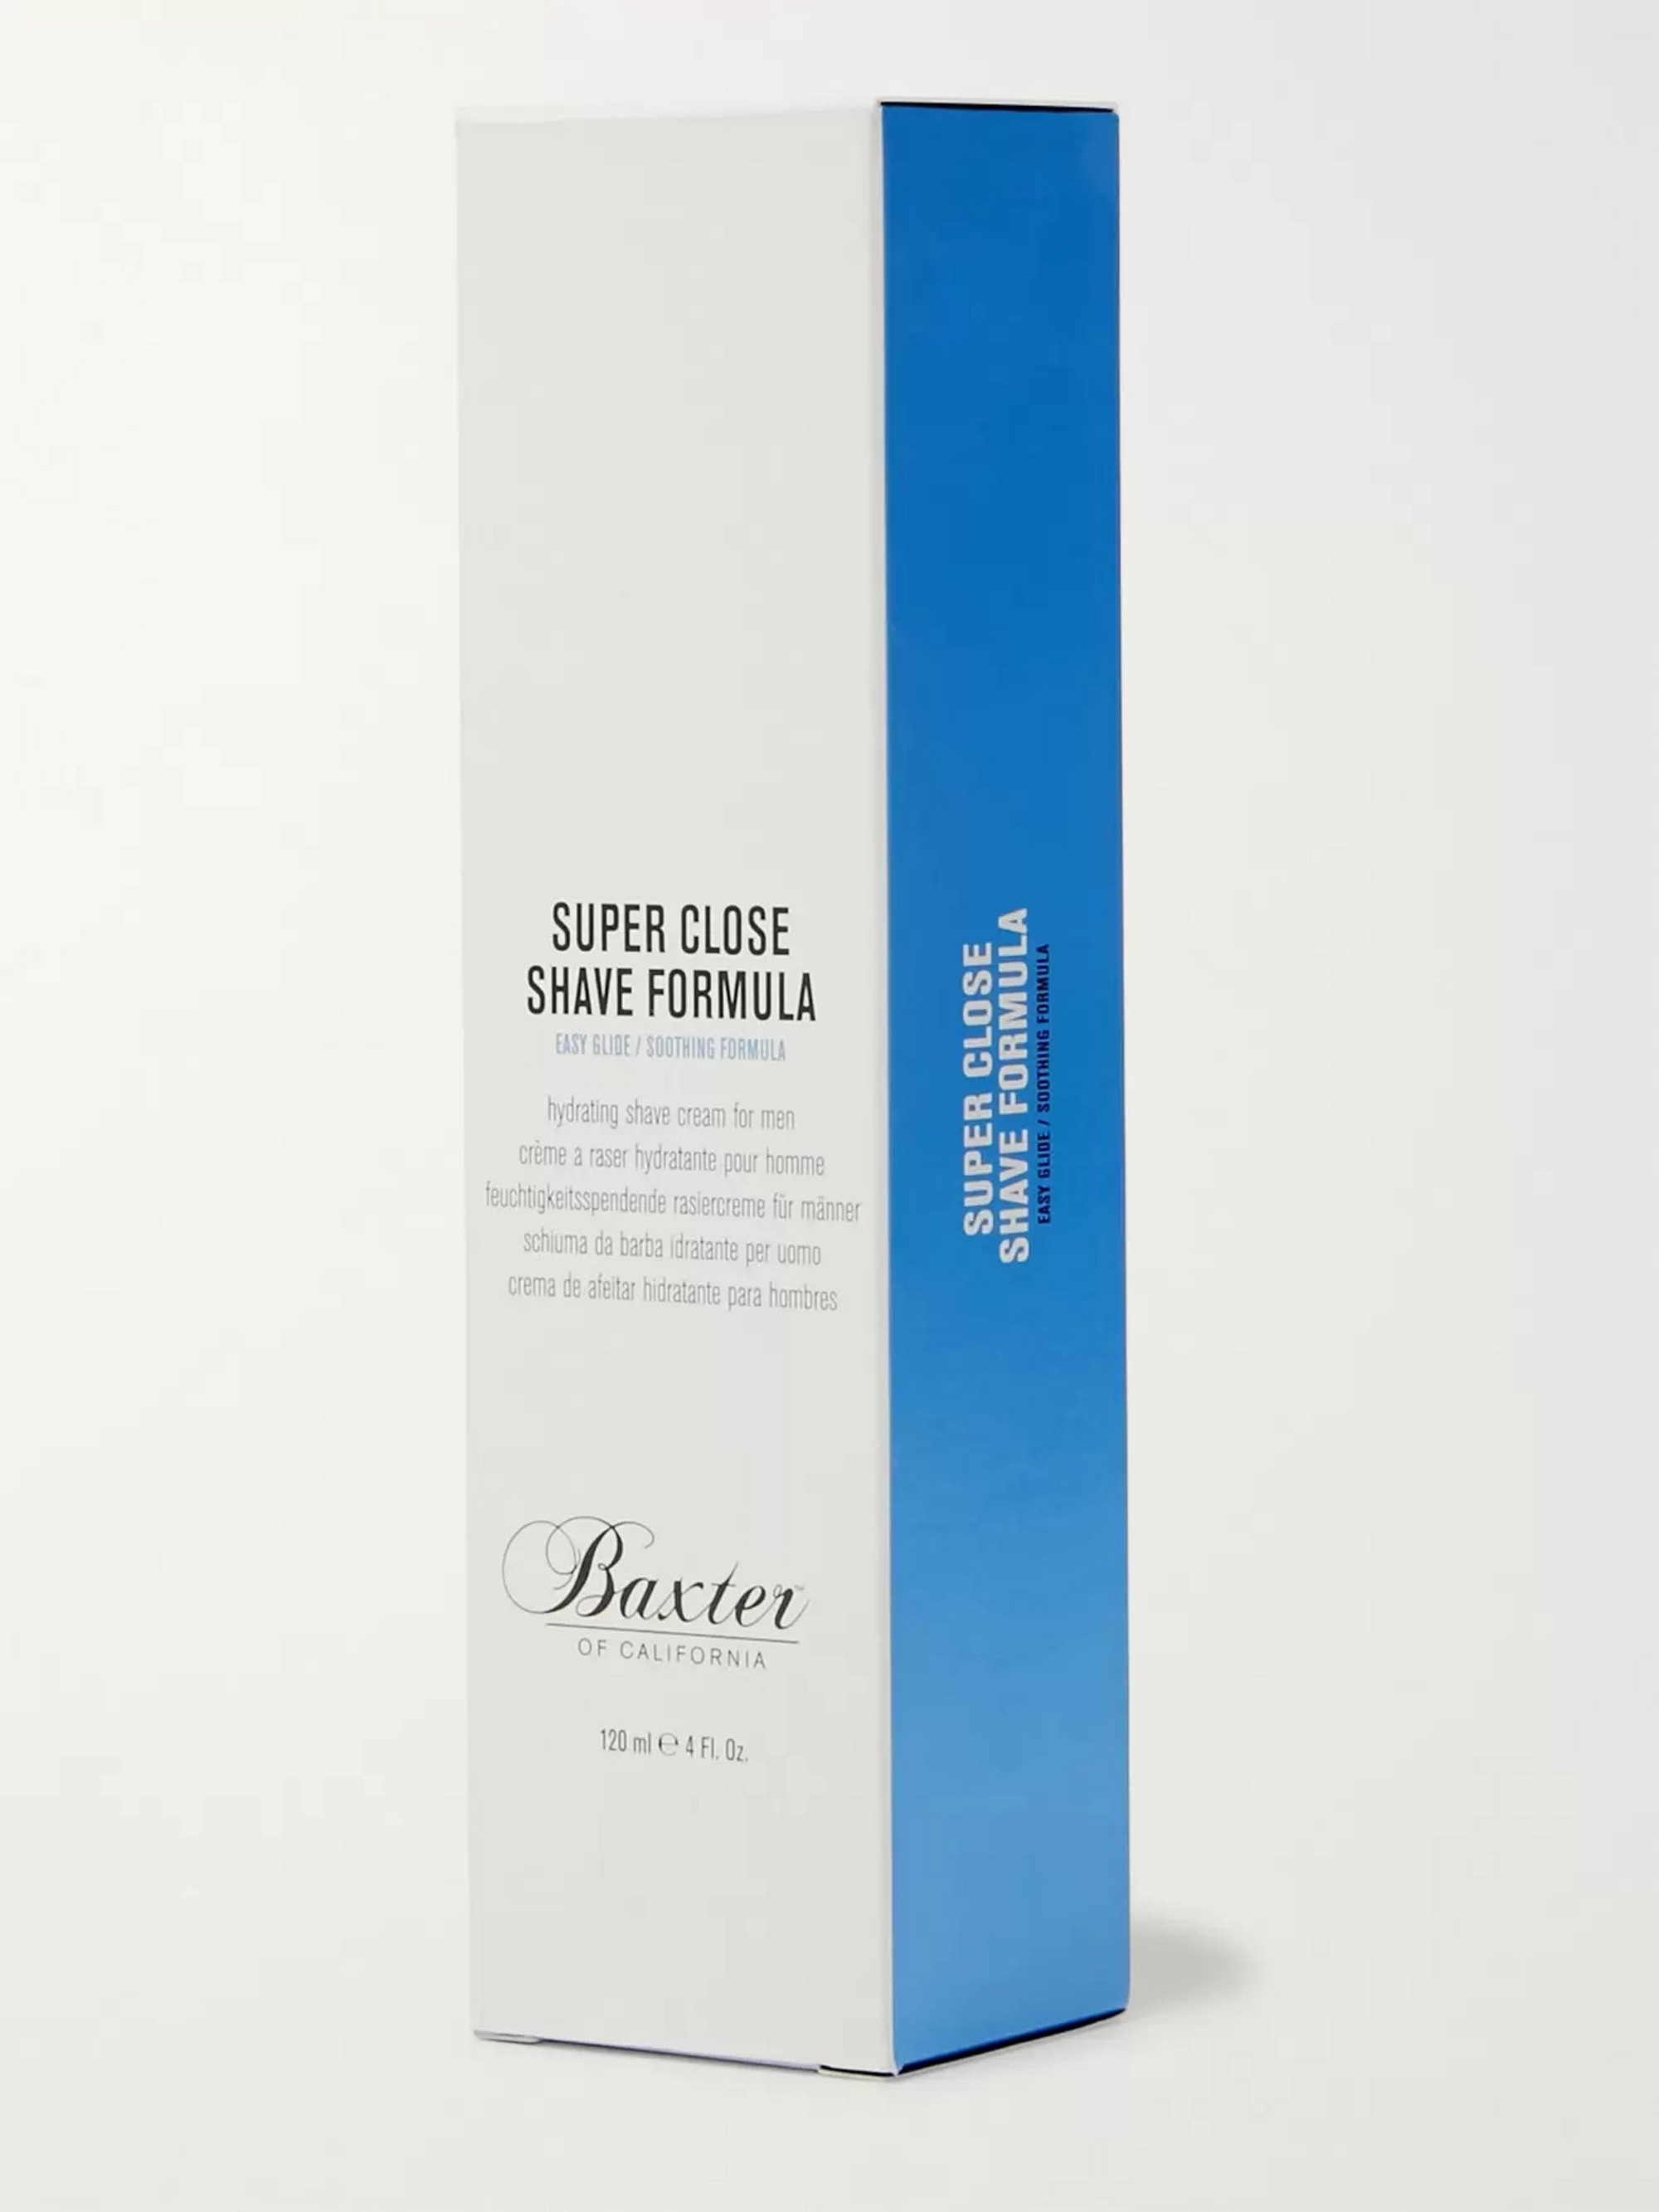 Baxter of California Super Close Shave Formula, 120ml